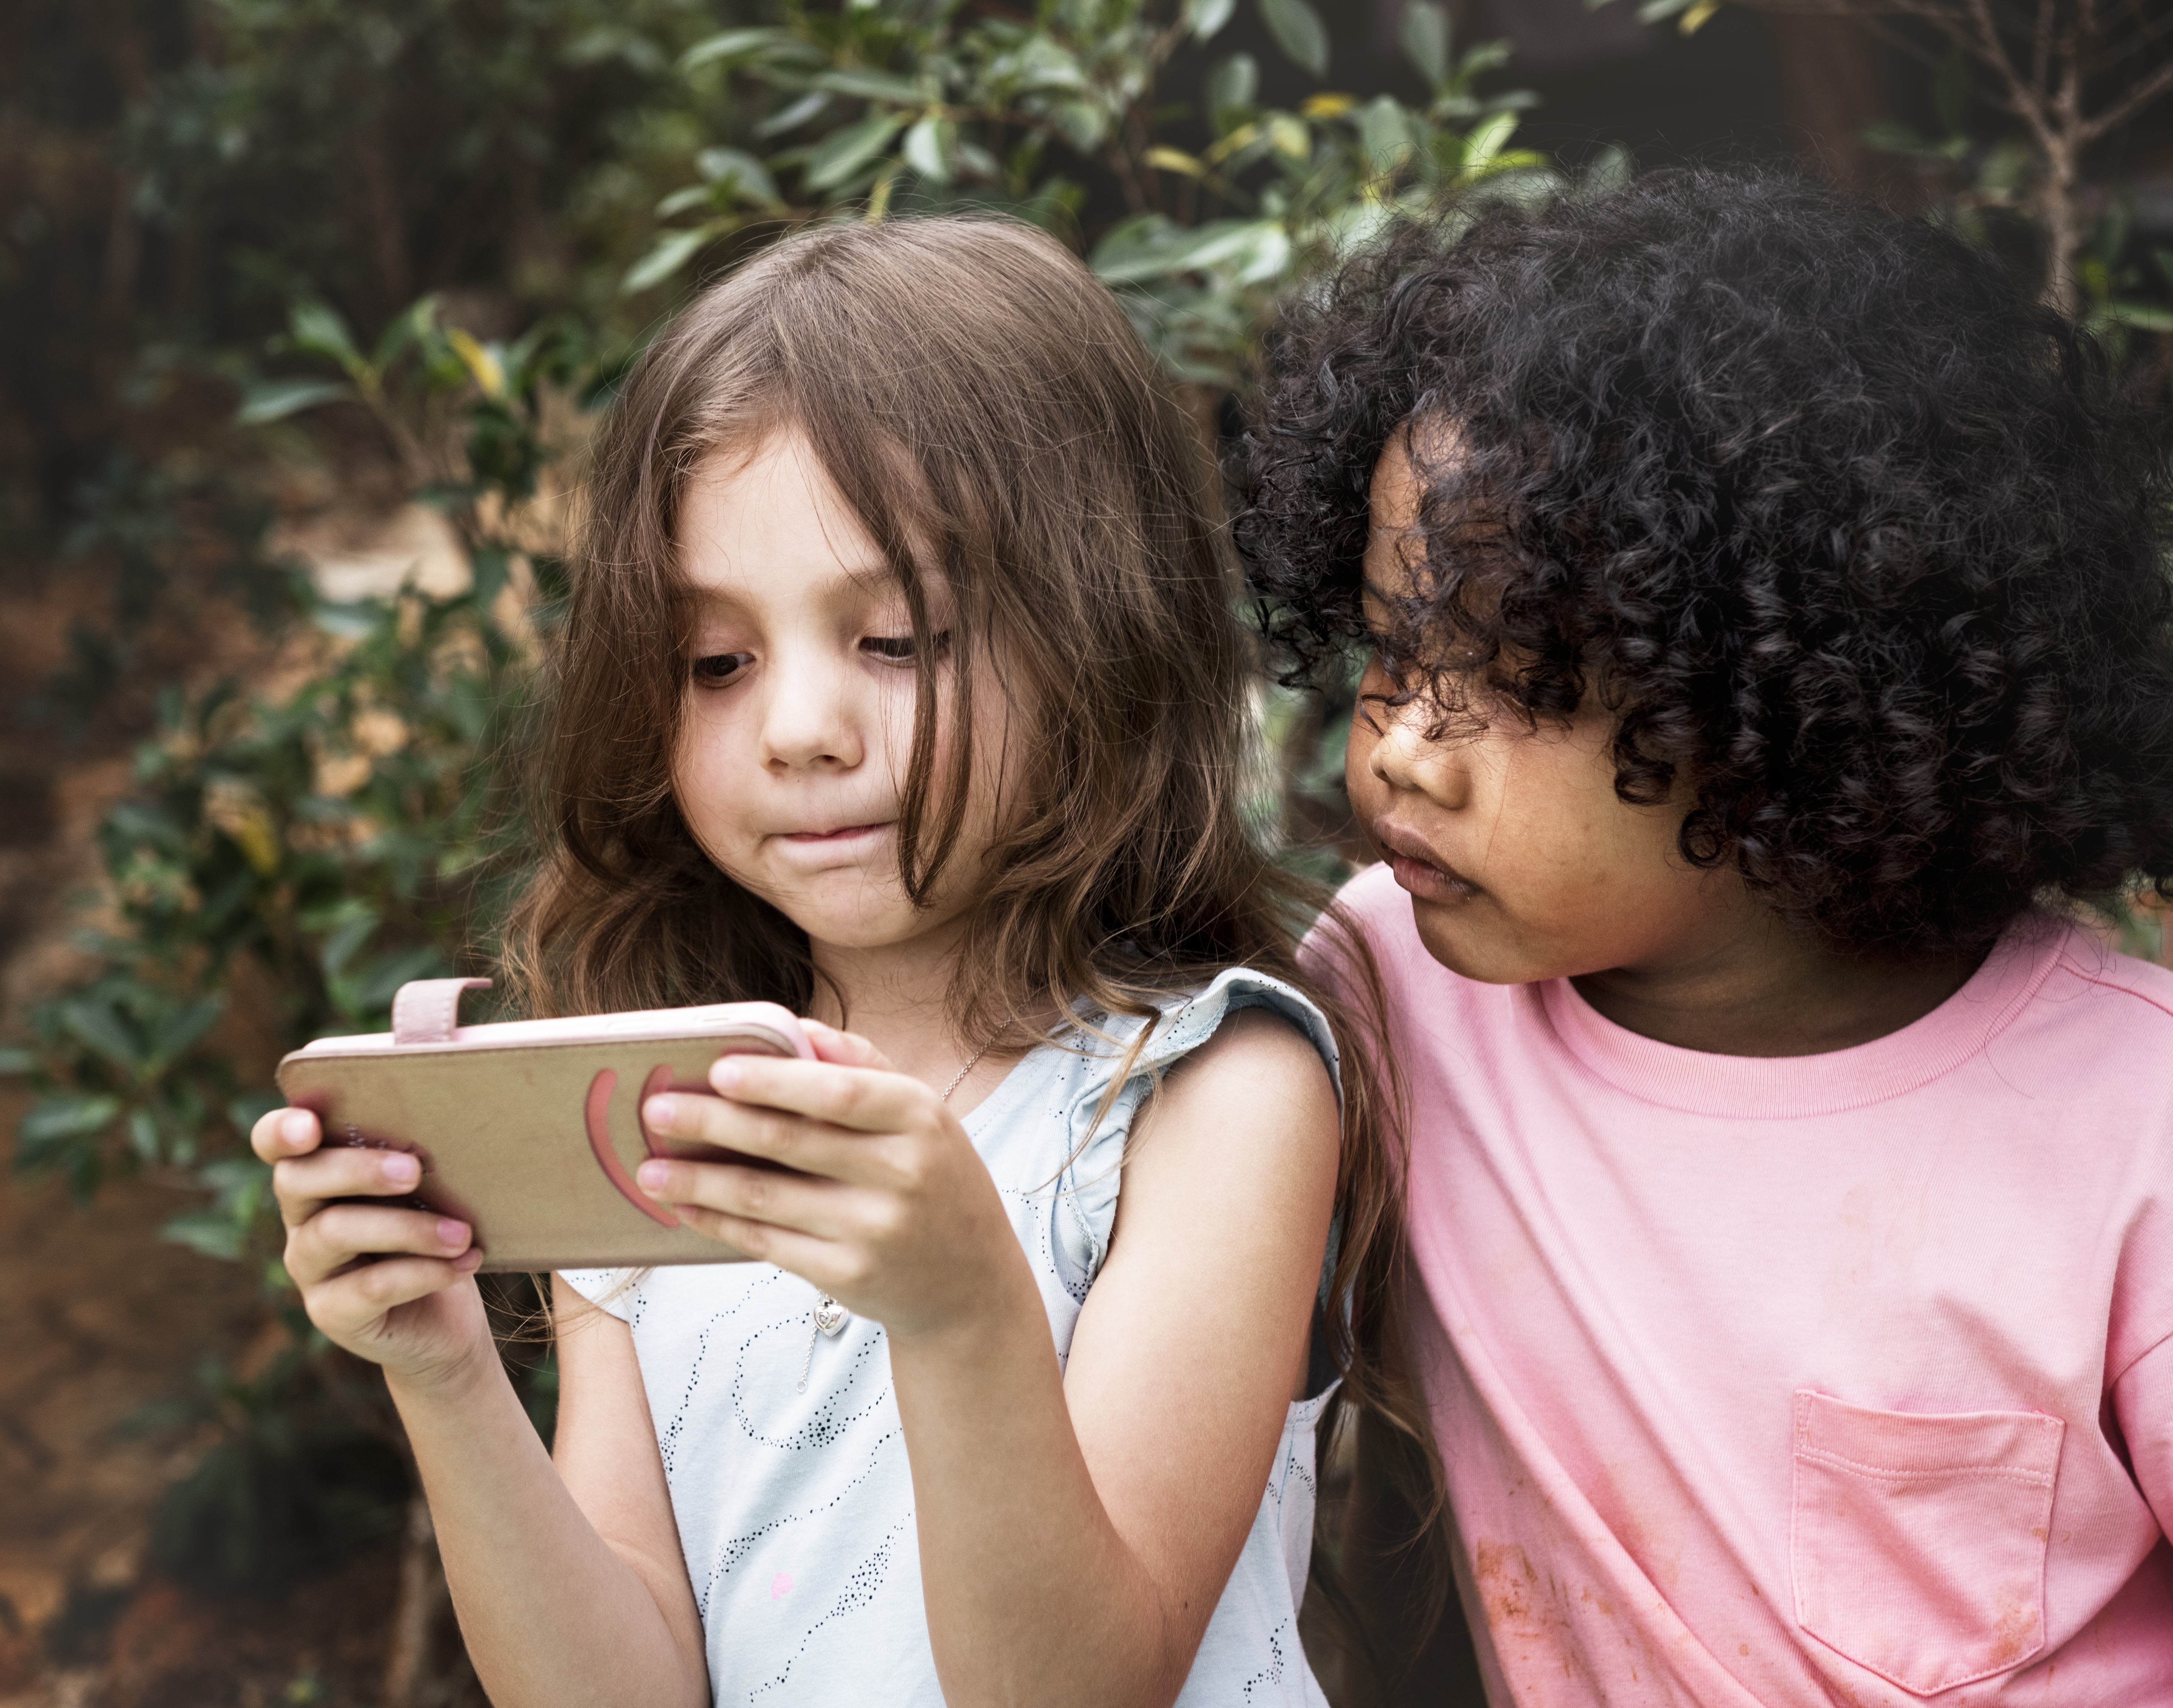 kids looking at a phone